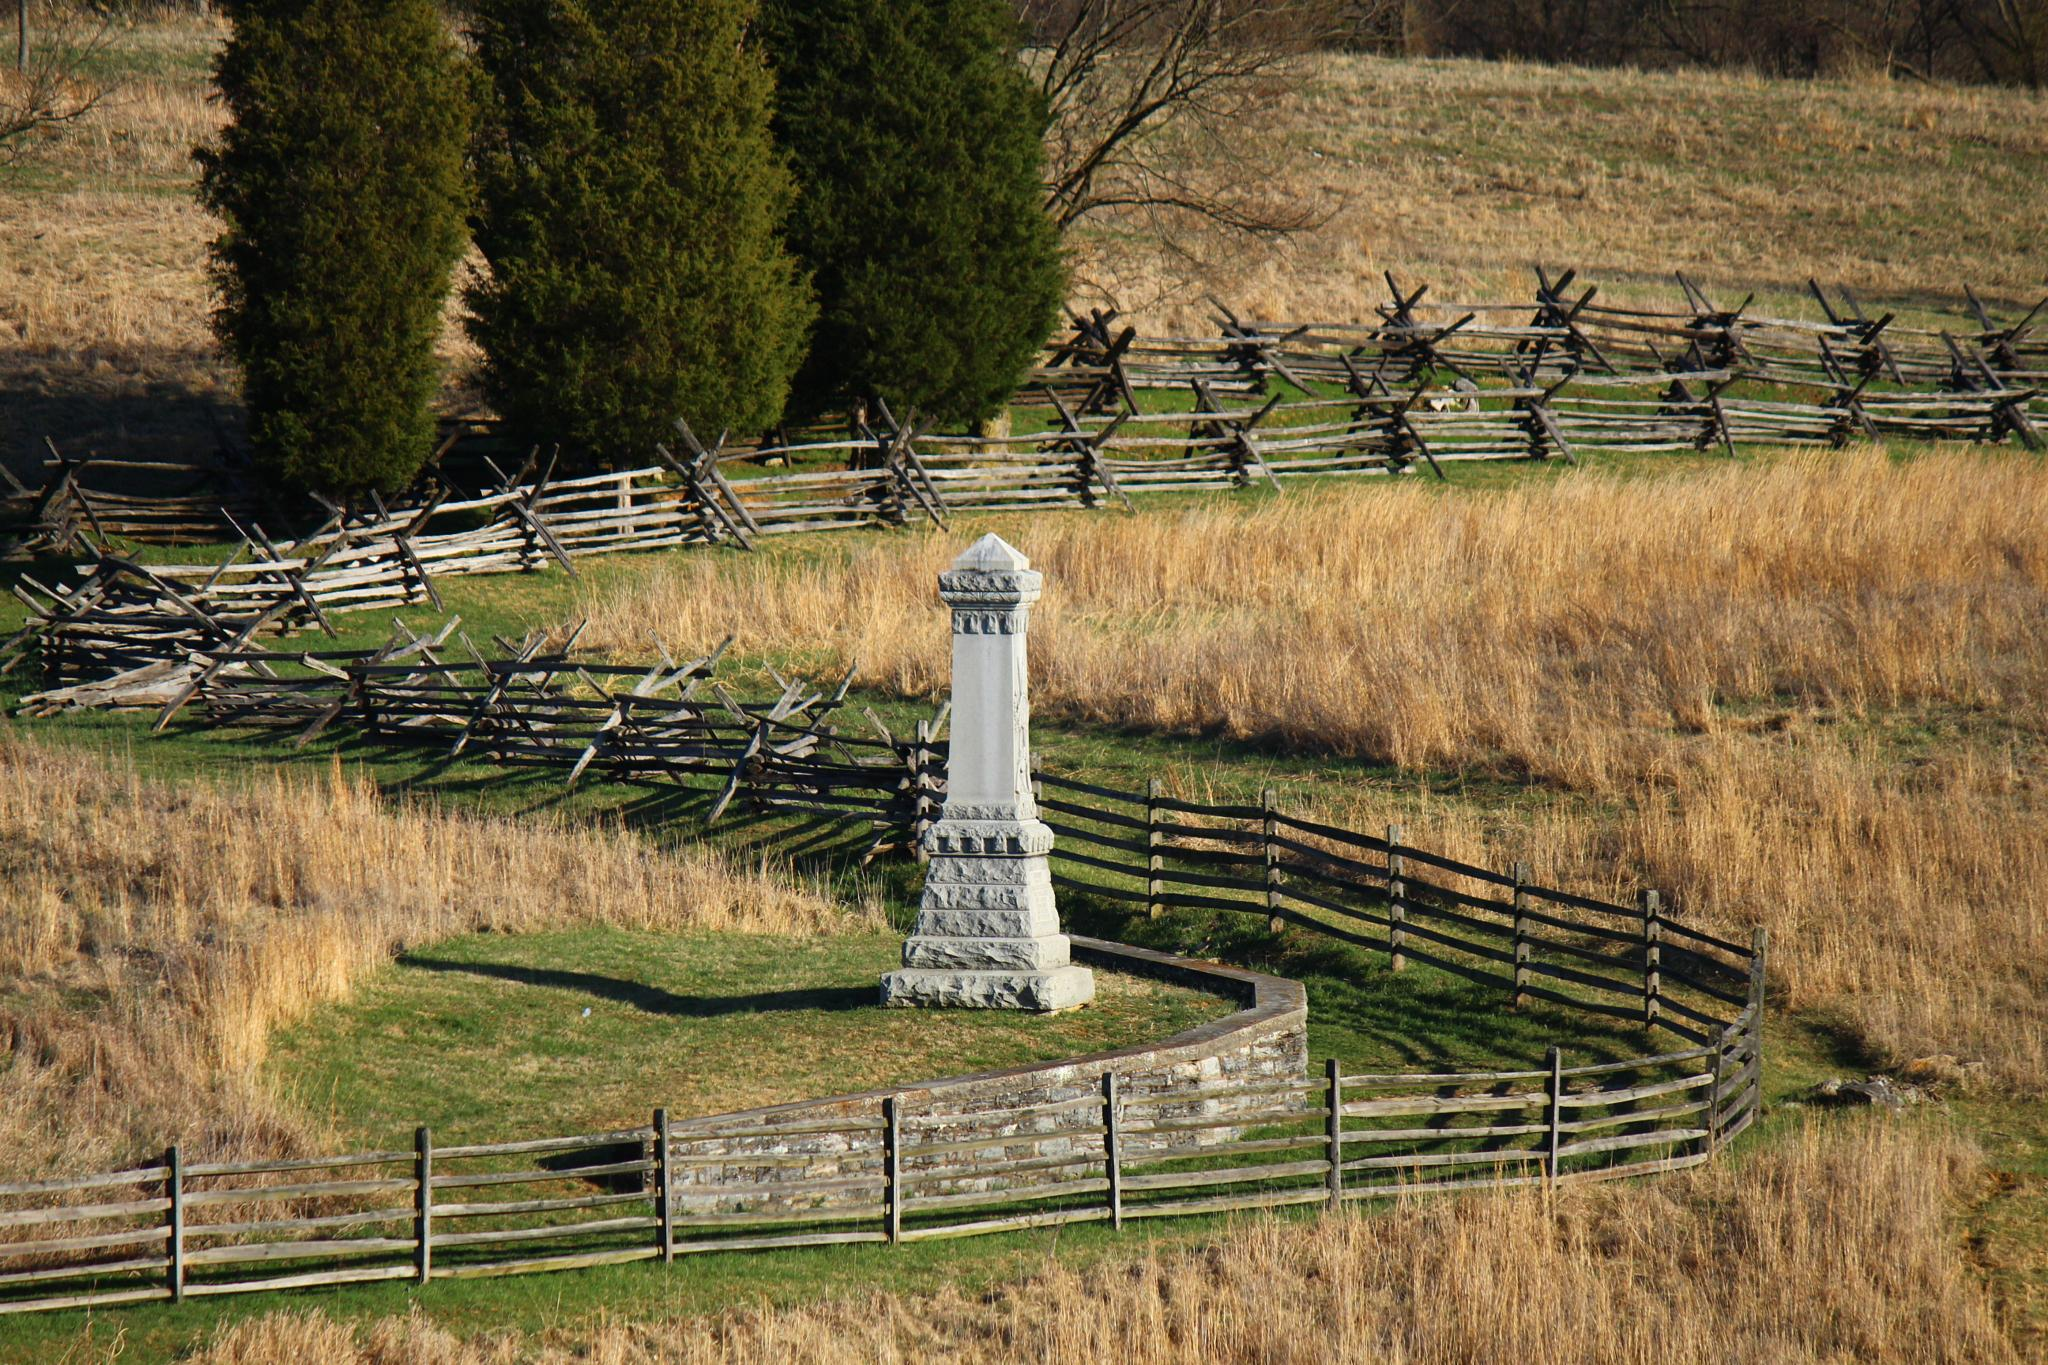 Civil War Monument With Winding Fences by Clark L. Roberts